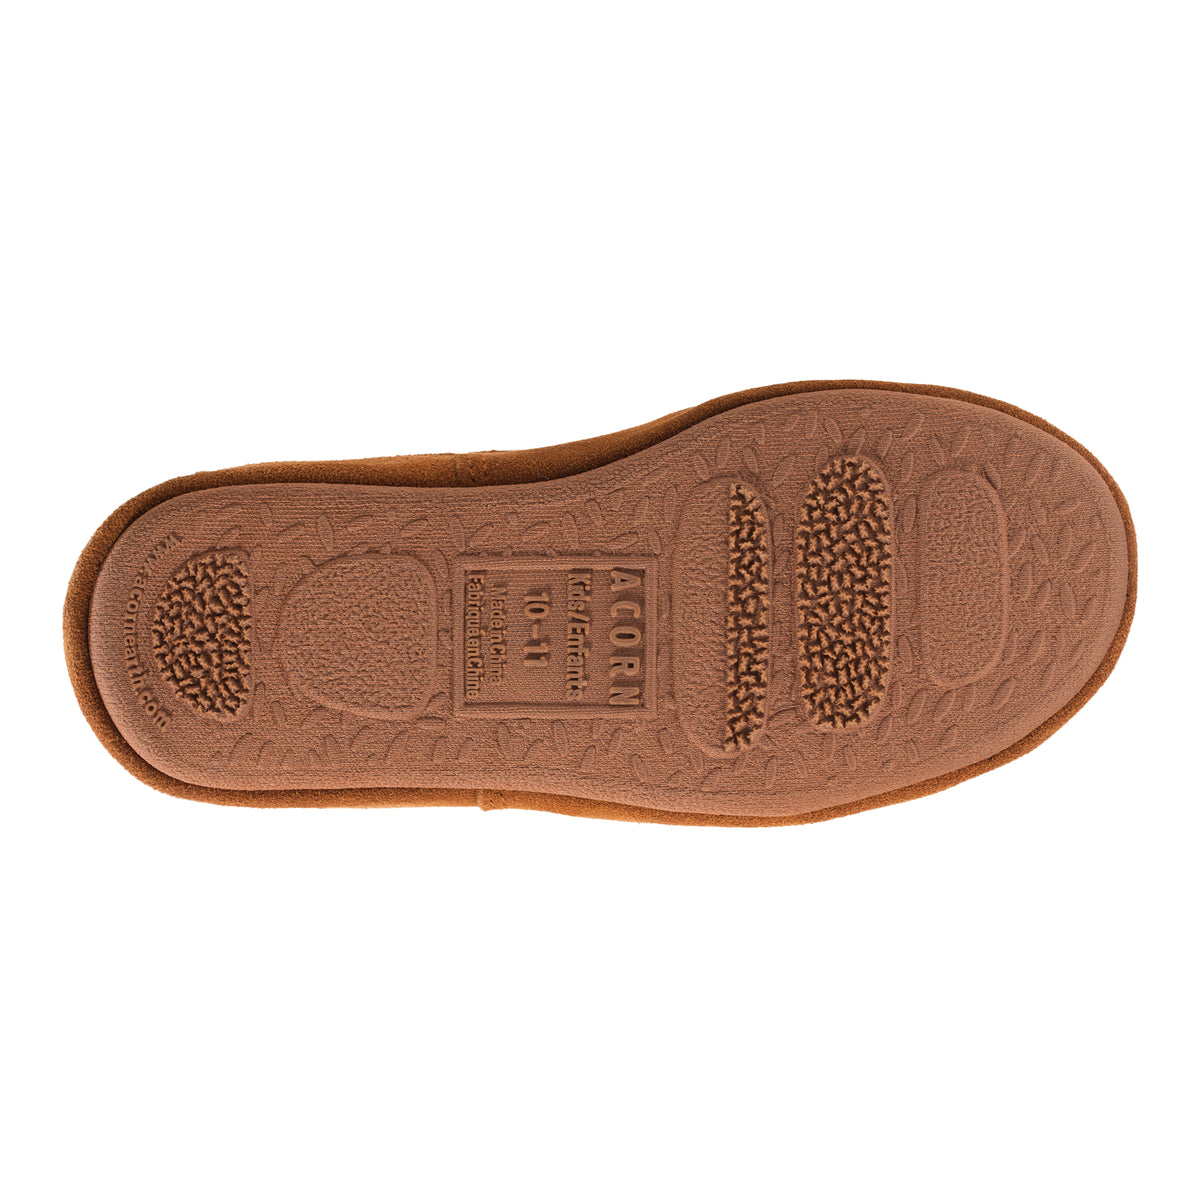 Kid's Original Acorn Moccasins in Buff Popcorn bottom Angled View